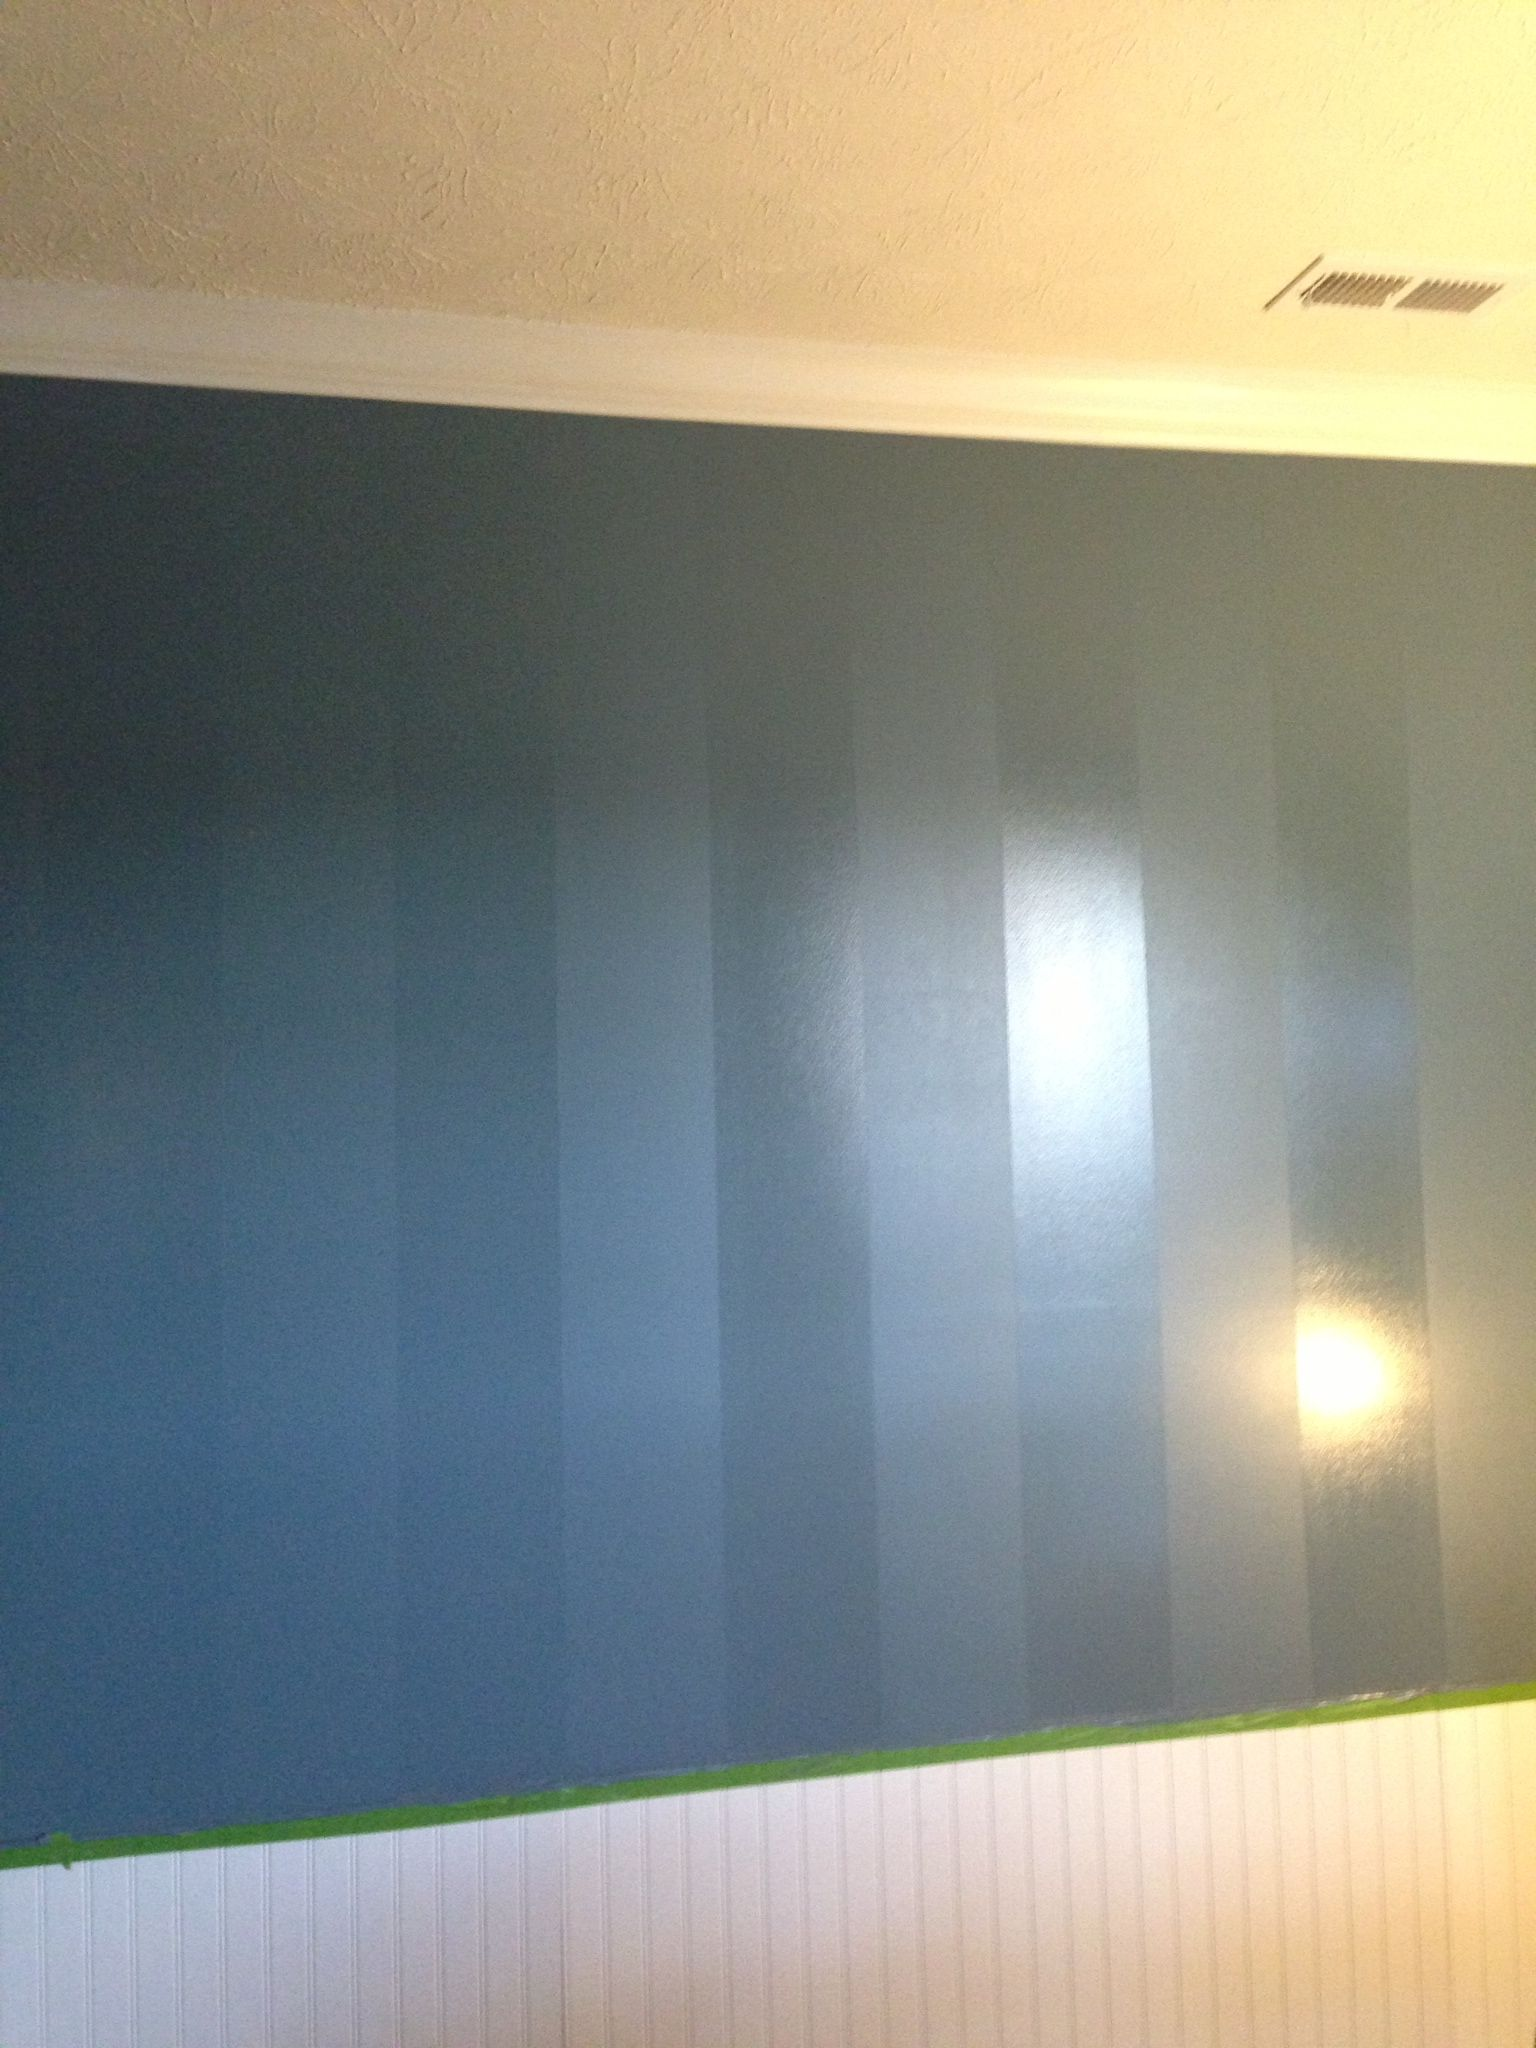 I M Very Proud Of The Job We Did Painting The Feature Wall We Used An Eggshell And Semi Gloss Fi Painting Stripes On Walls Wall Paneling Master Bedrooms Decor